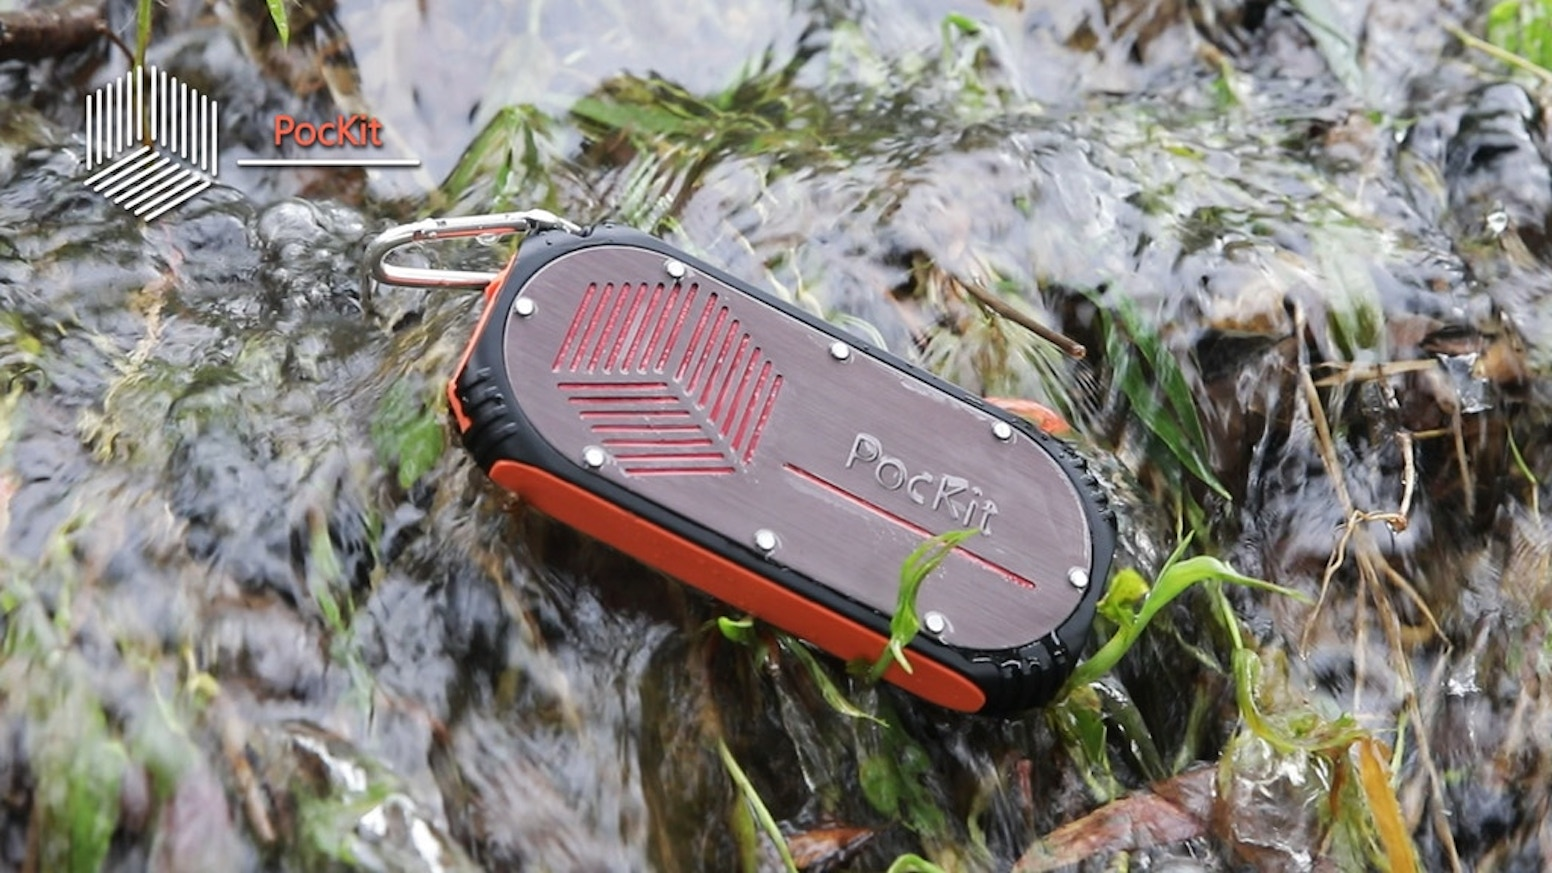 Compact, waterproof gadget with a built-in power bank, flashlight, speaker, and proximity tracker.